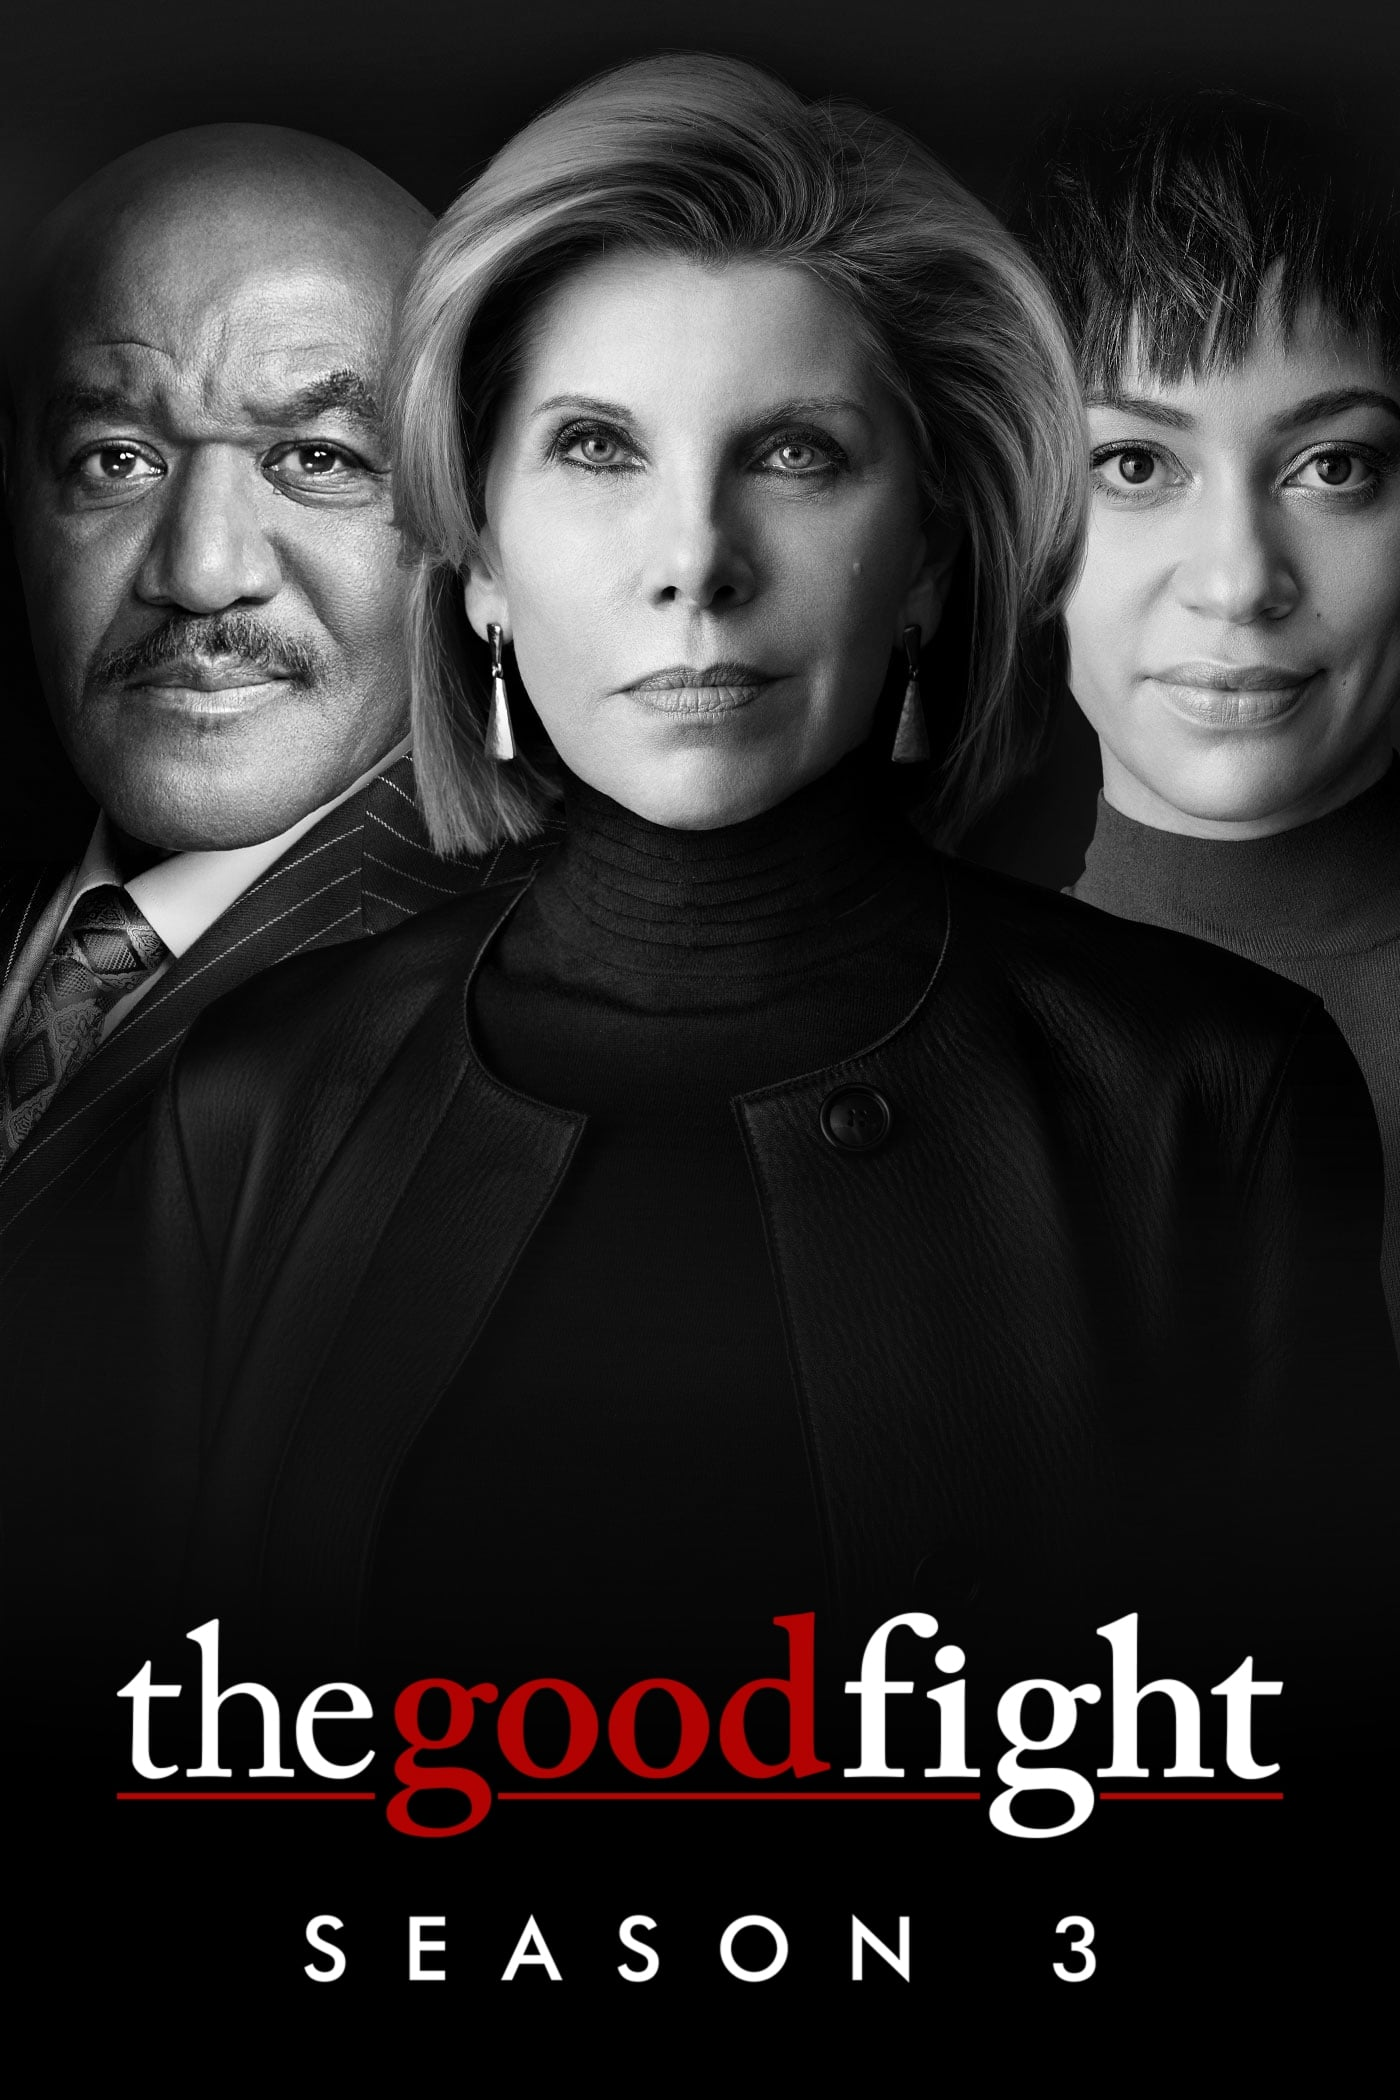 The Good Fight Season 3